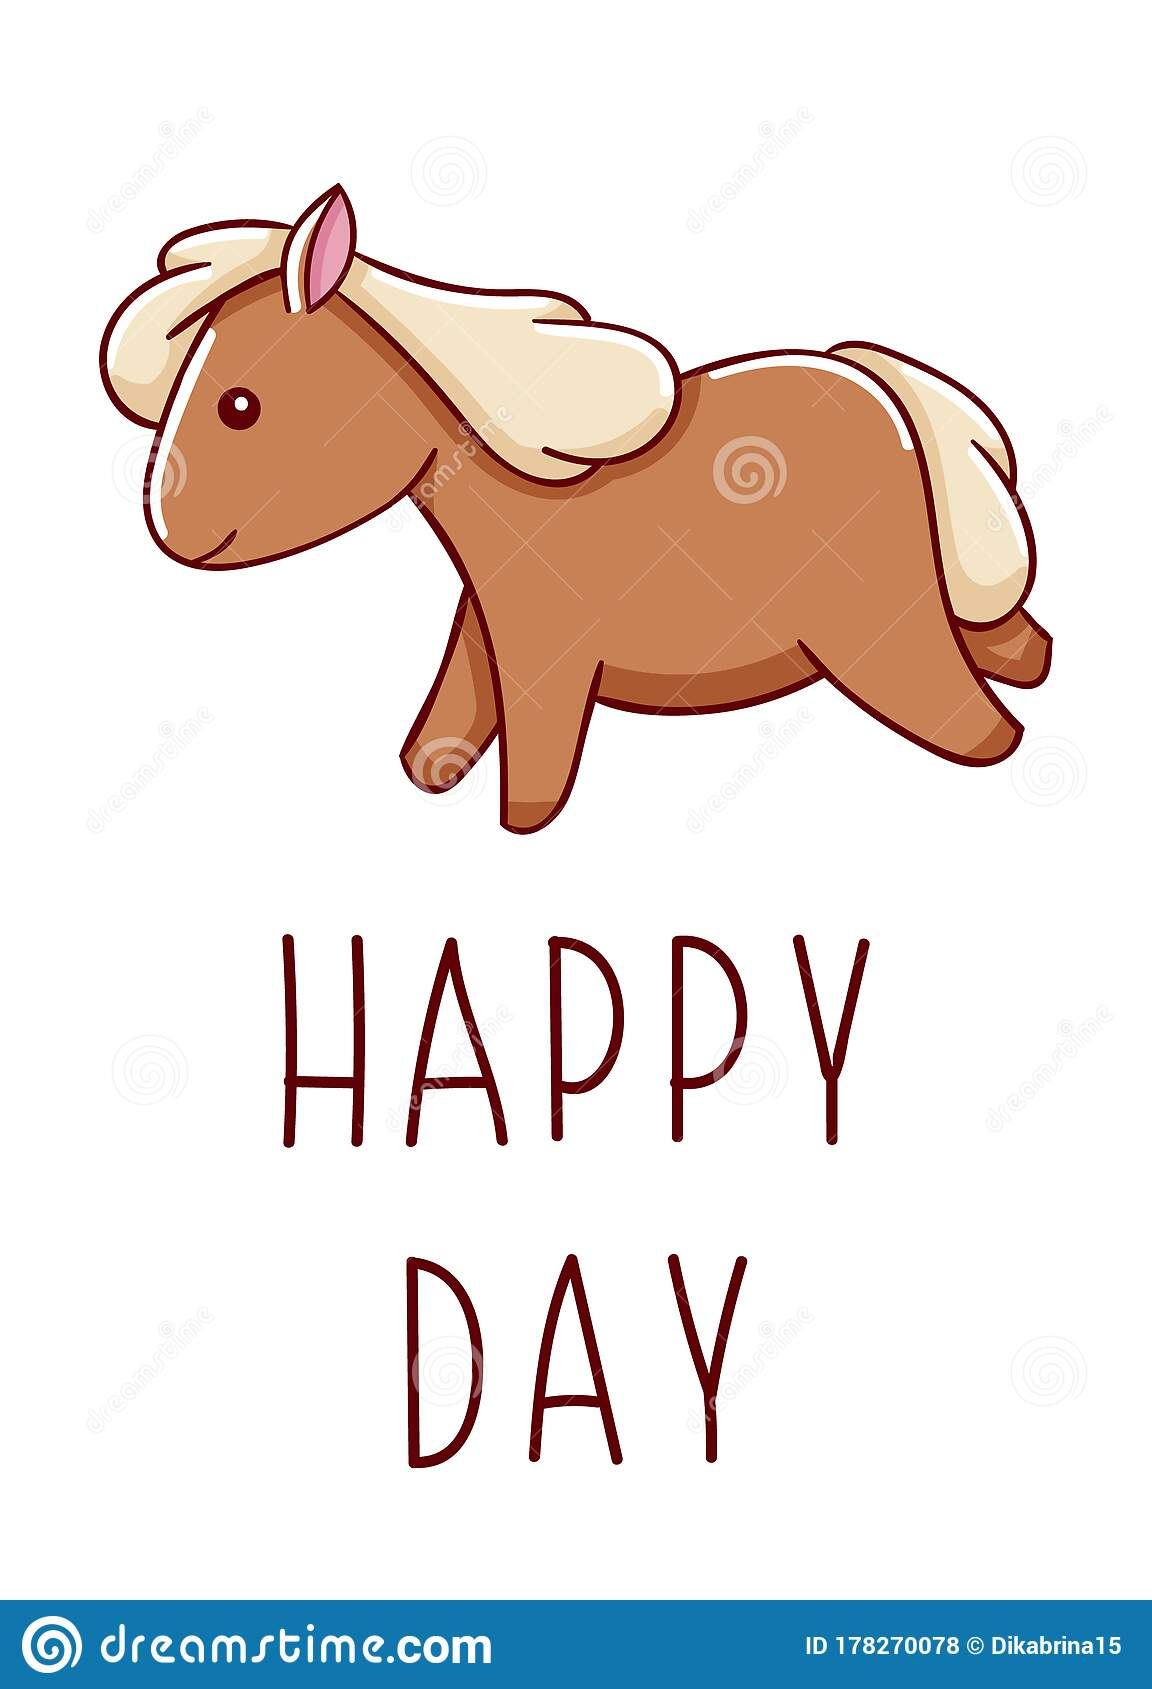 Cute Kawaii Hand Drawn Horse Doodles Lettering Happy Day Isolated On White Background Stock Vector Illustration Of Pony Baby 178270078